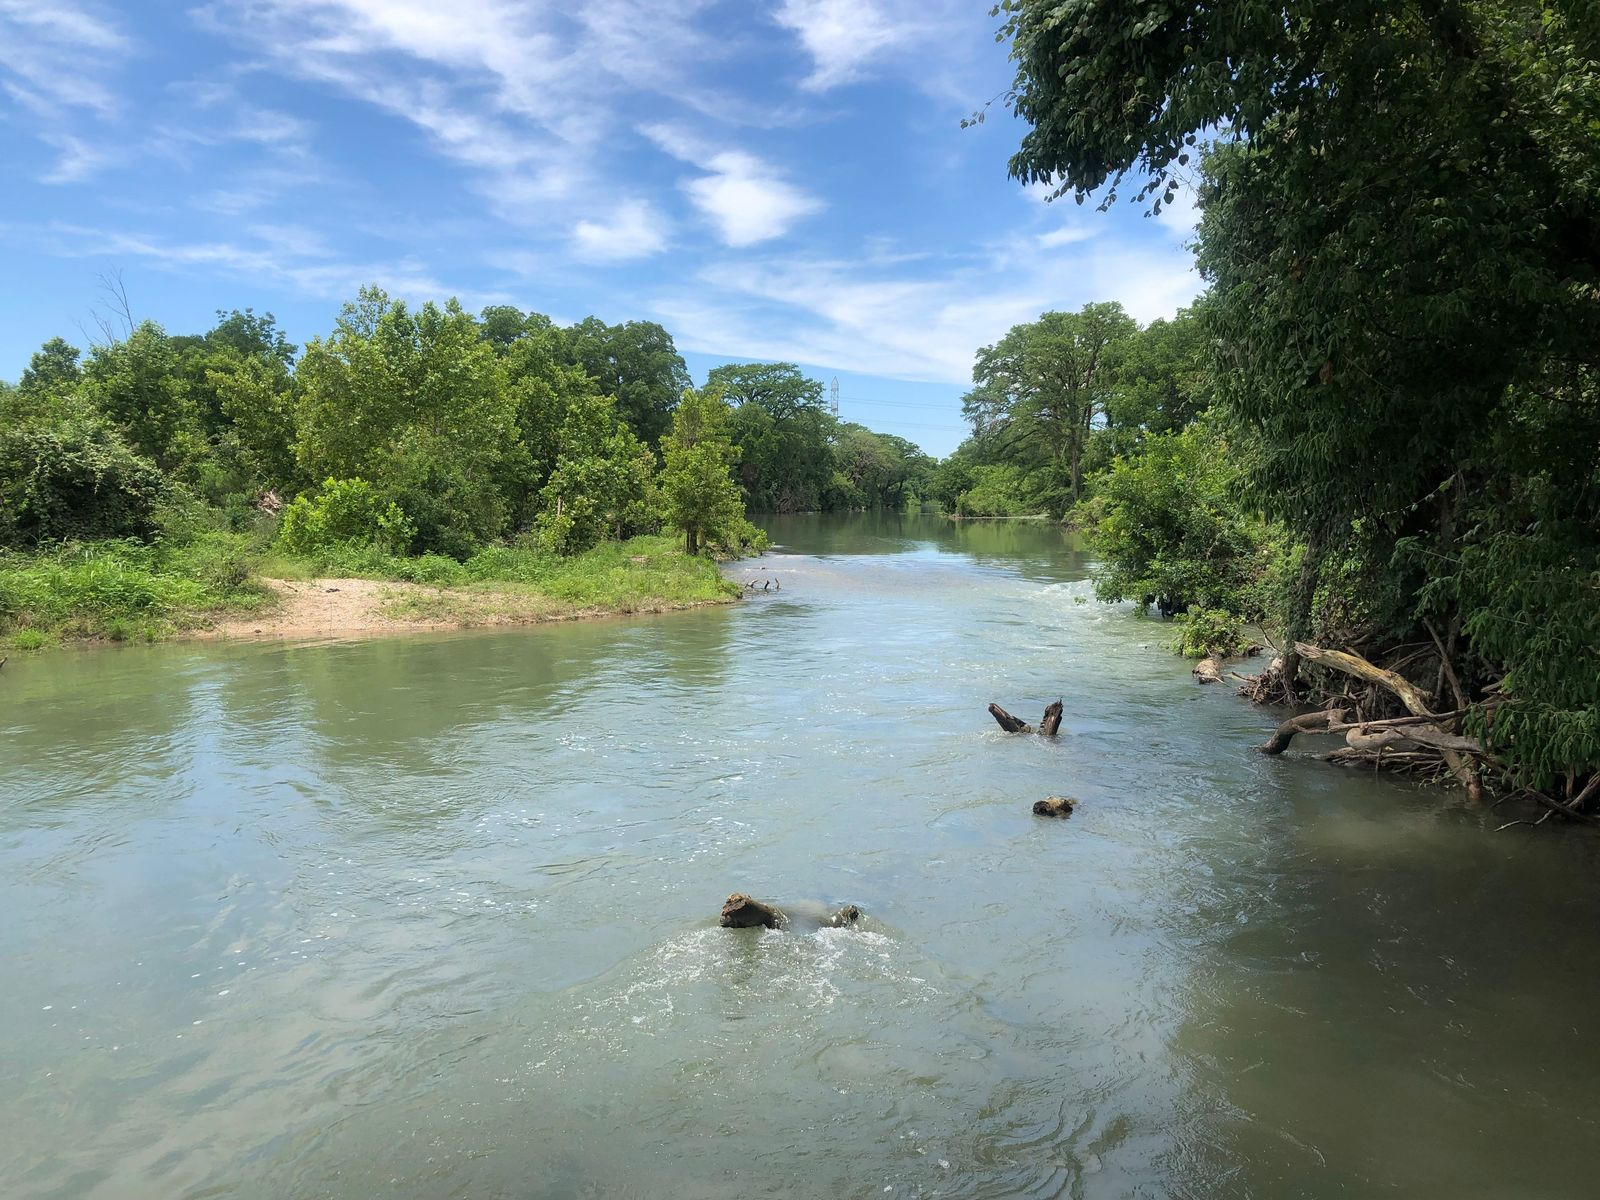 Texas Parks and Wildlife says a man from Austin died during a tubing trip on the San Marcos River over the weekend. (CBS Austin)